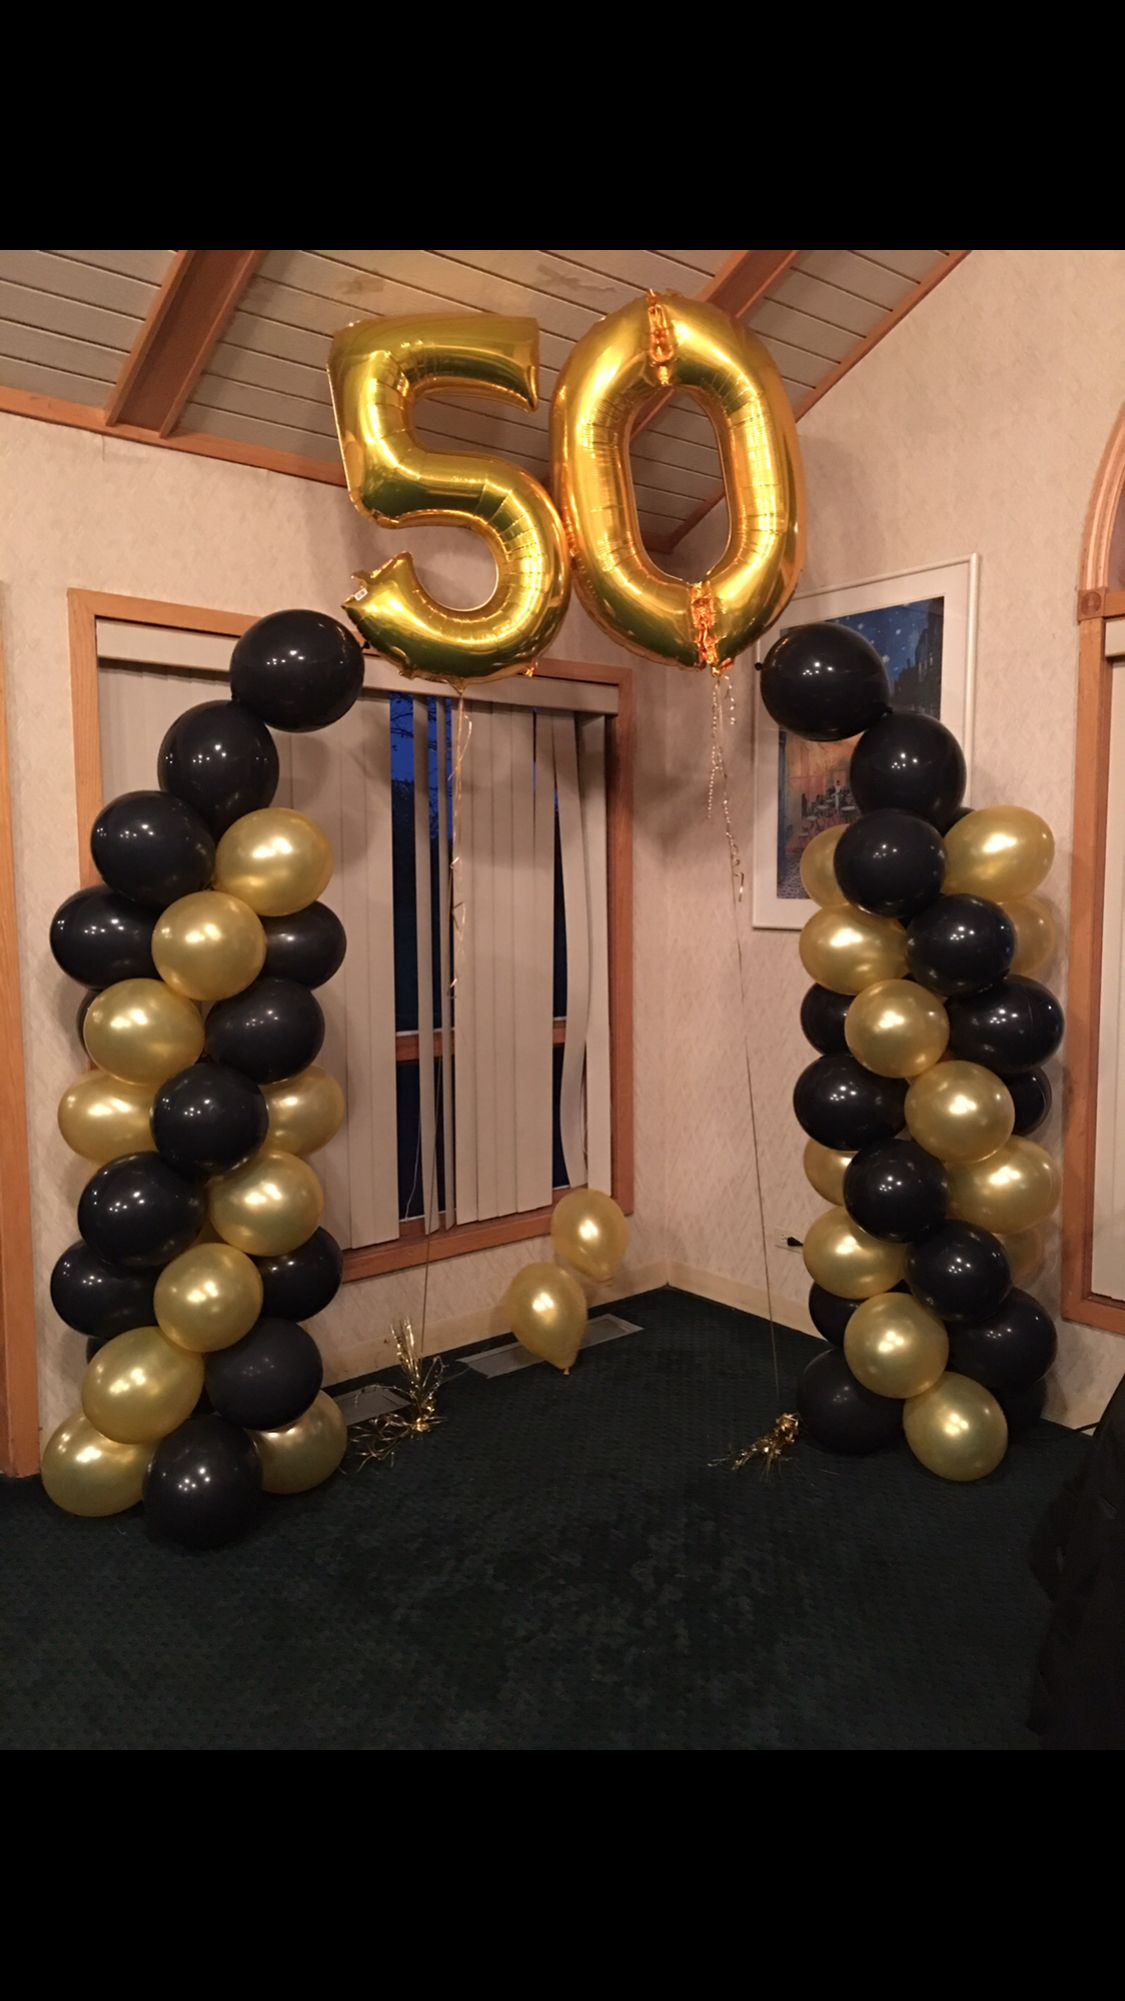 Balloon Arch For Birthday Party 50th Birthday Party 50th Birthday Balloons 50th Birthday Decorations